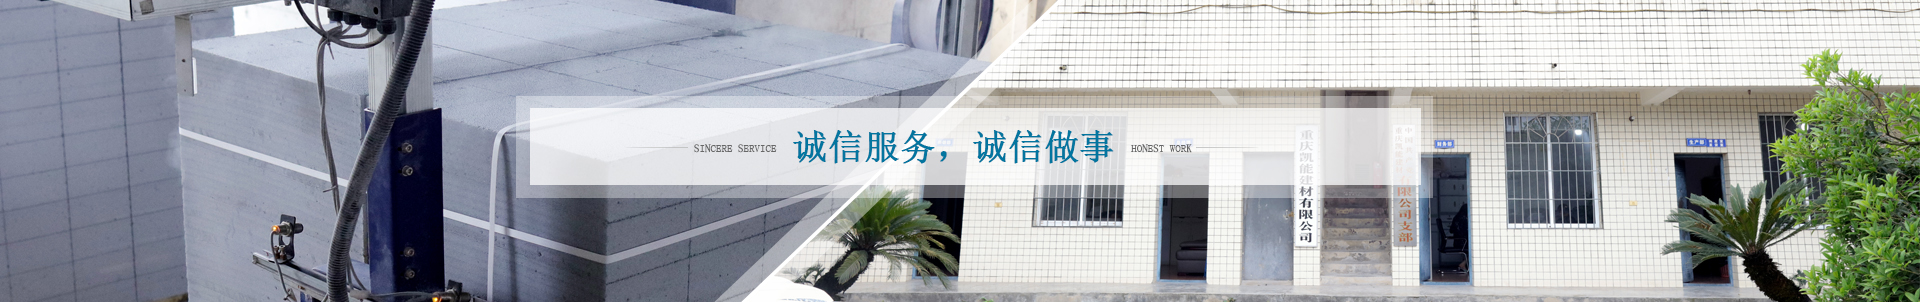 http://www.cqknjc.cn/data/images/slide/20190618100247_392.jpg